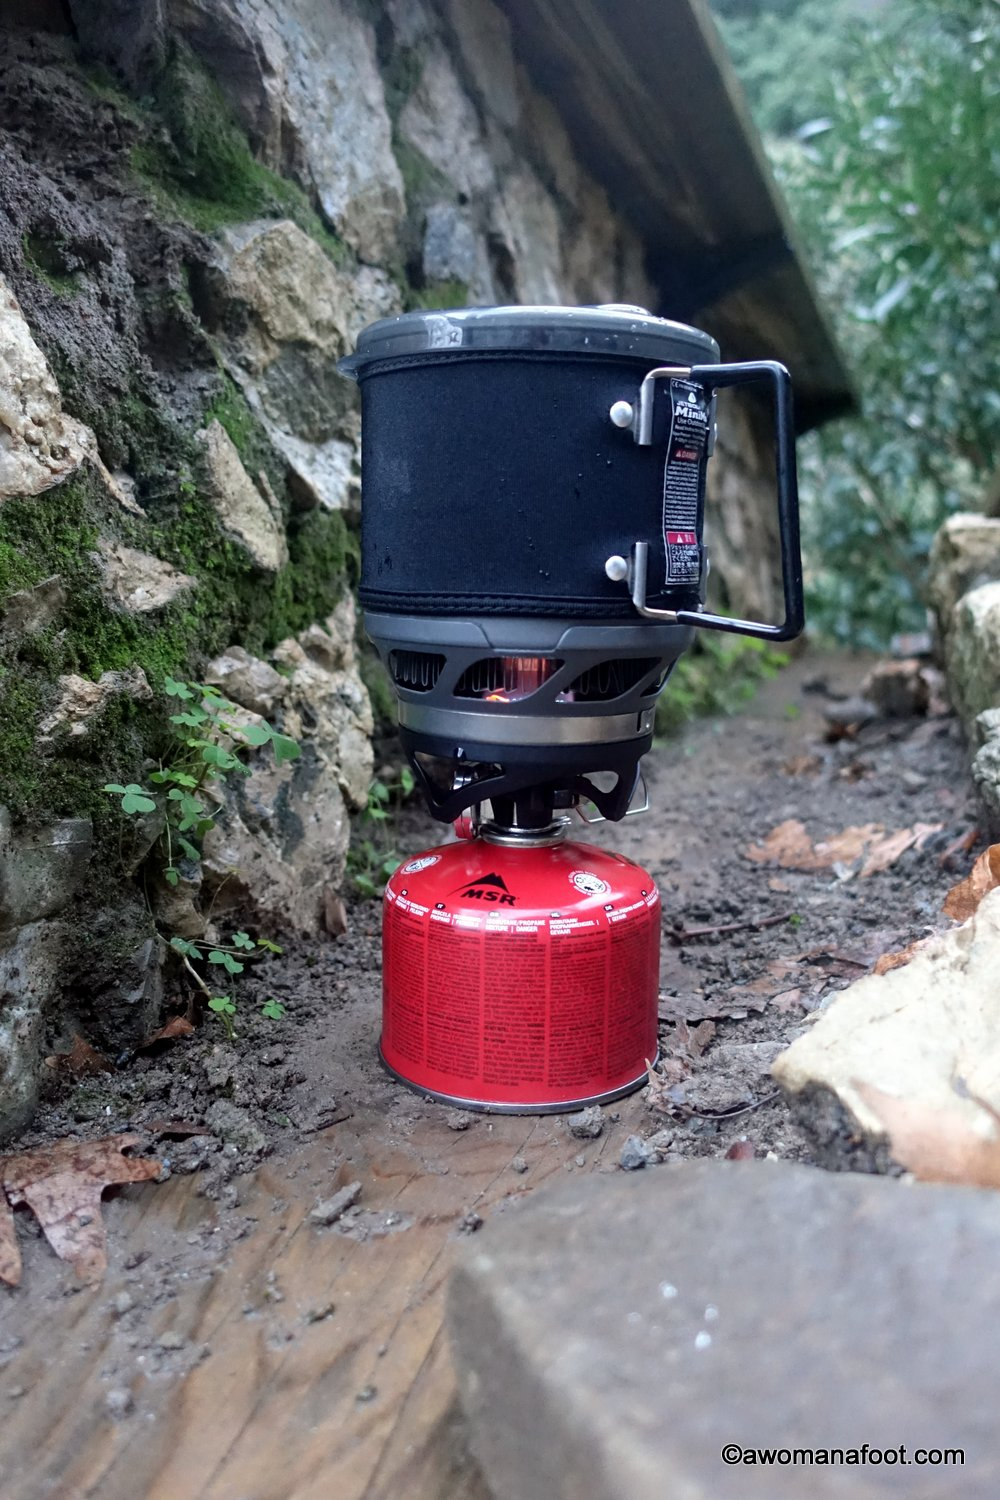 Do you need a reliable, light, and energy efficient backpacking stove? Check my review of Jetboil Minimo to see if it might be just the stove for you! Awomanafoot.com | #gear #review #hiking #camping #backpacking #HikingGear #Jetboil #CampingStove #GiftIdea #GiftsForHikers #Outdoors